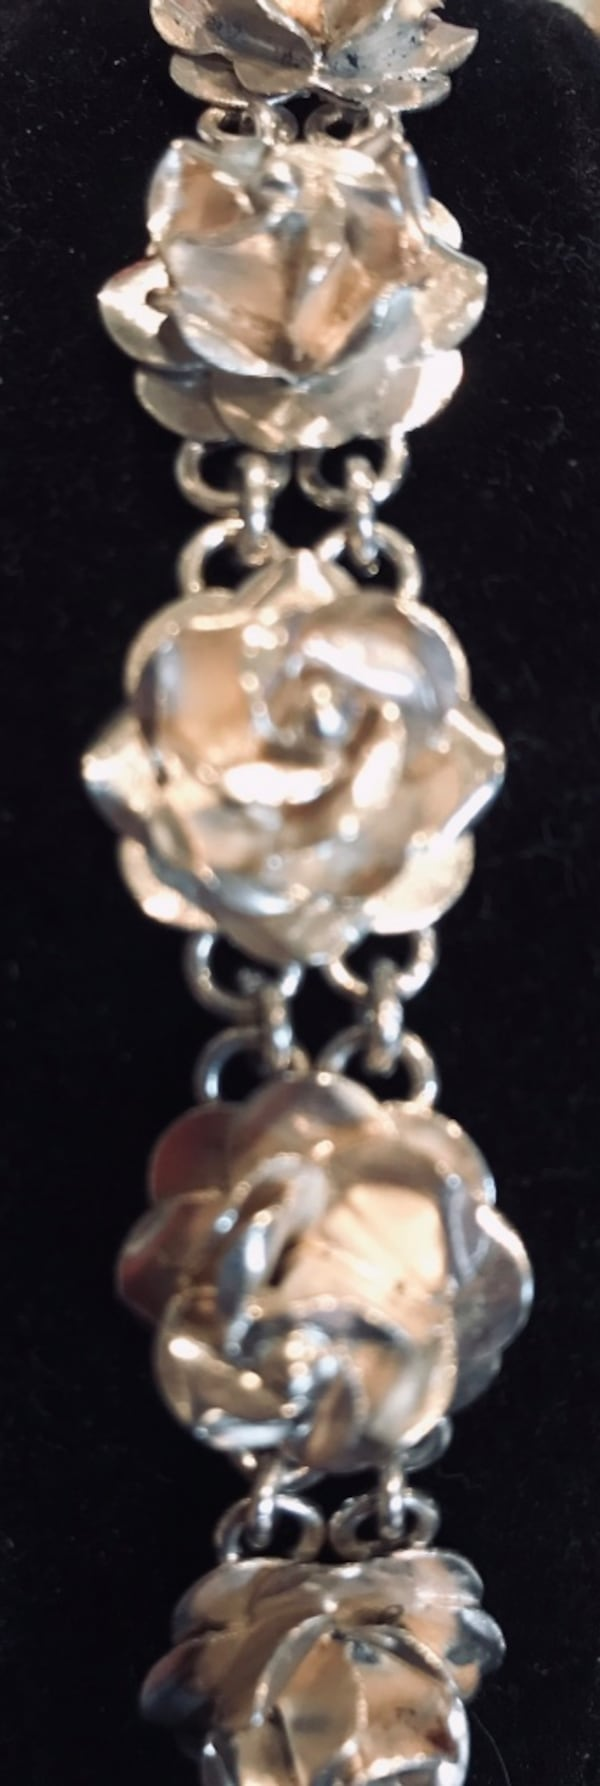 Sterling silver 3-d rose bracelet from Mexico 332142c4-4807-4595-8107-c5dc38dbe293